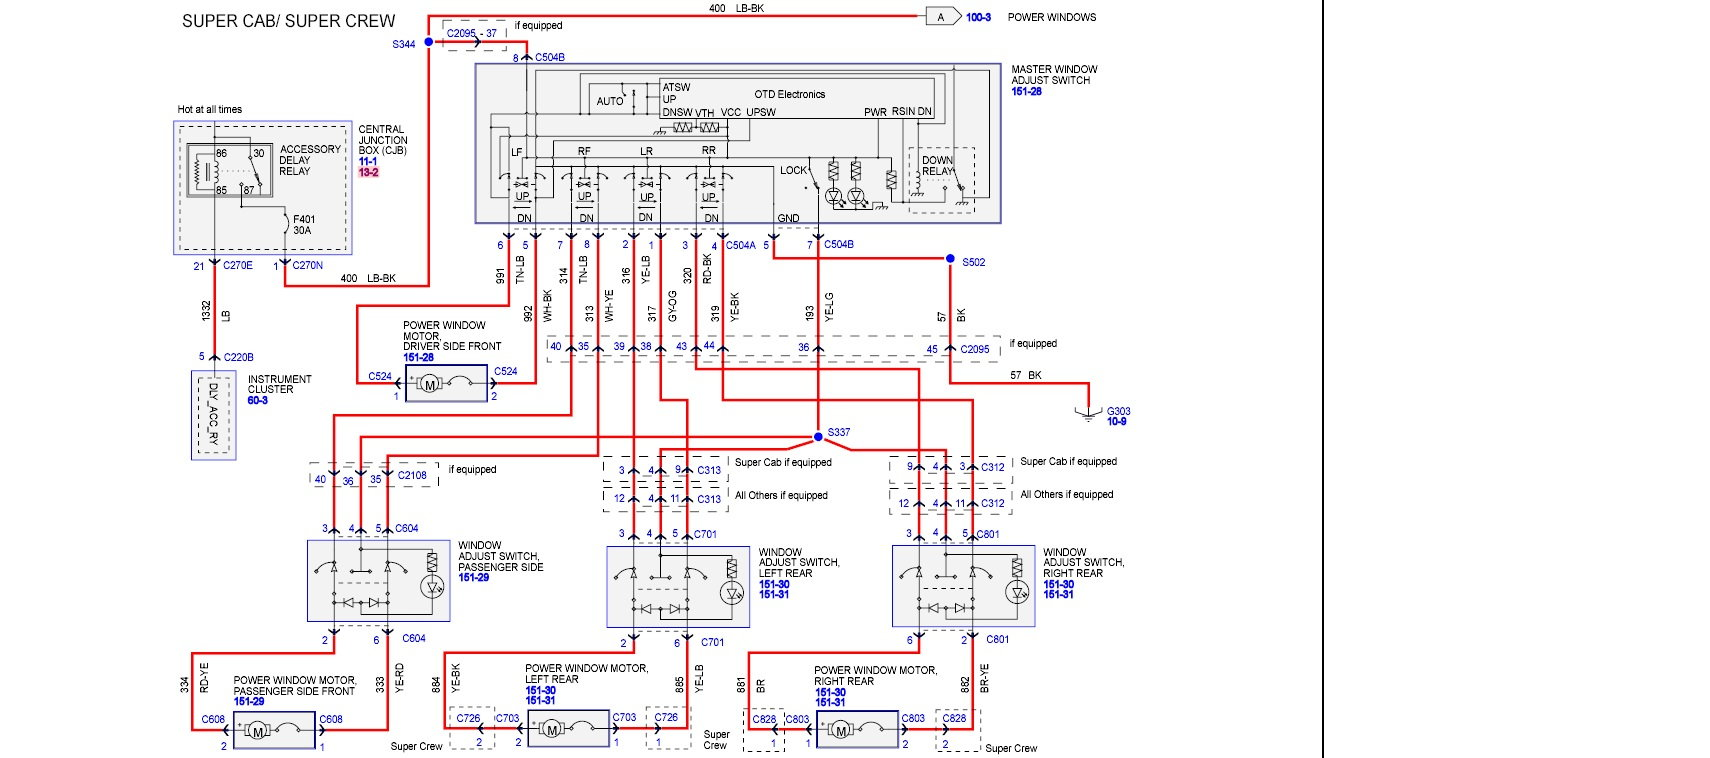 hight resolution of window only works with door open page 2 ford f150 forum 2004 f150 wiring schematics 2004 f150 window wiring diagram